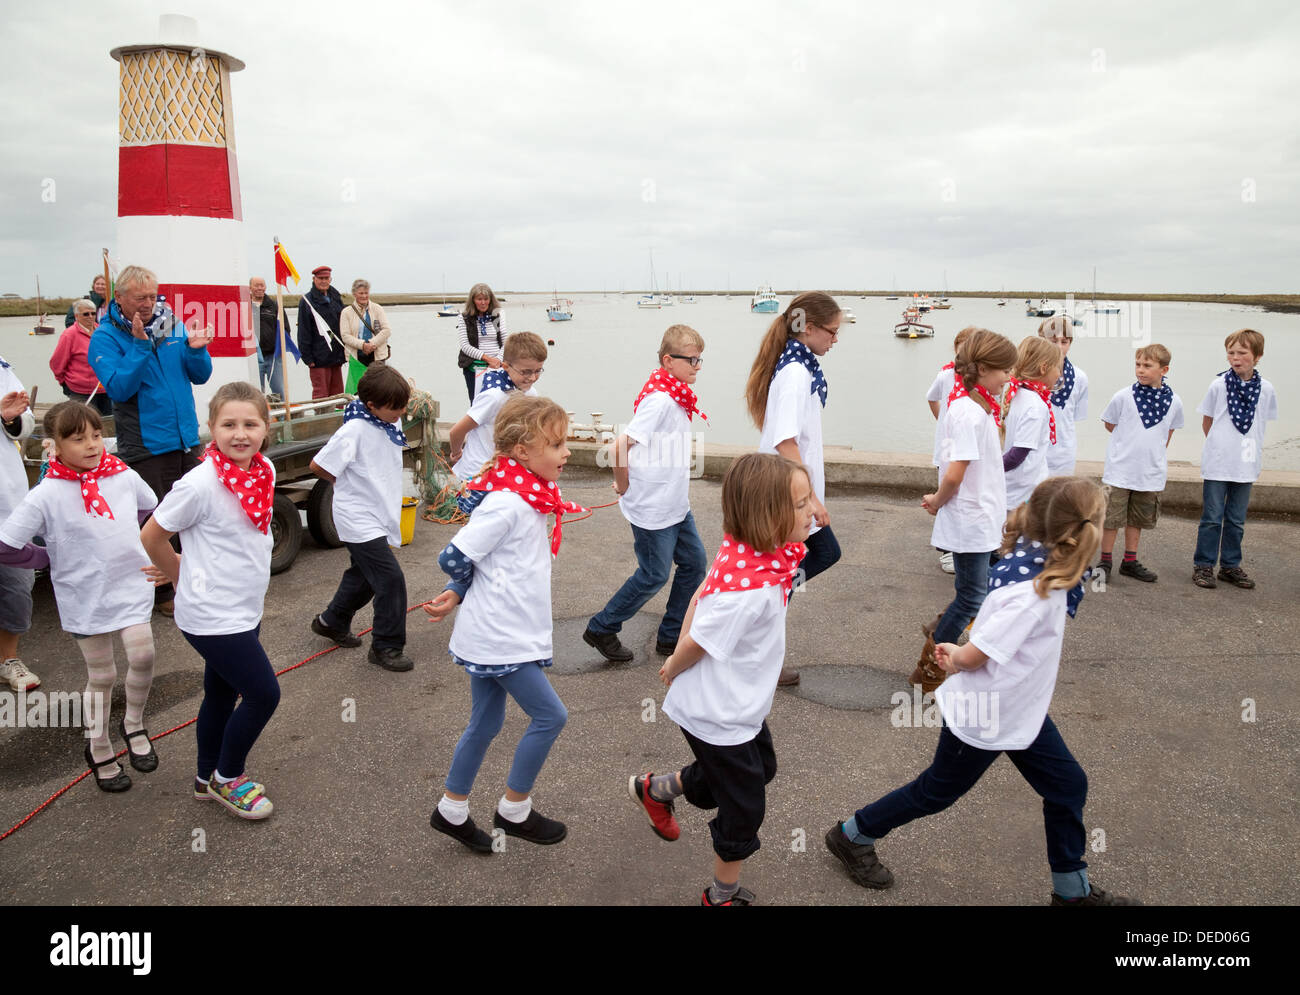 Children dancing at a village fete, Orford, village Suffolk England UK - Stock Image